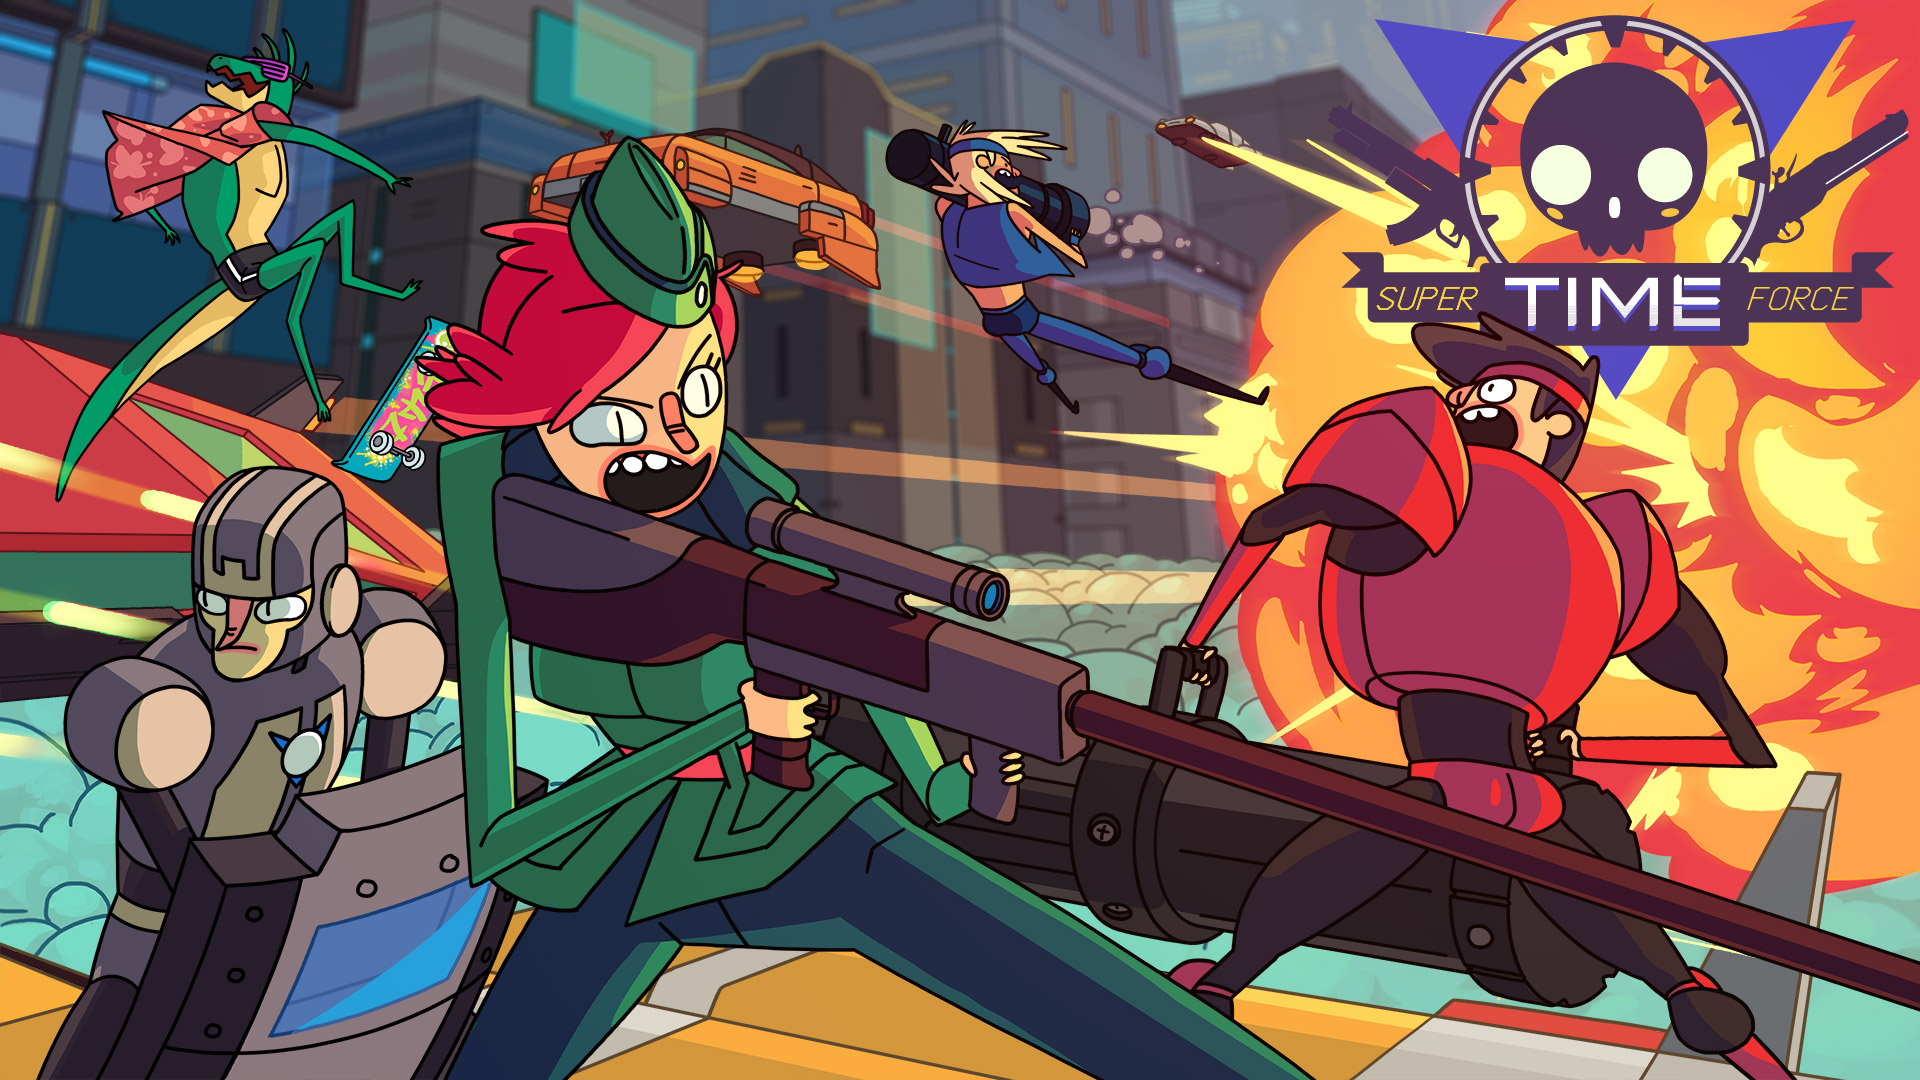 Super Time Force Wallpaper in 1920x1080